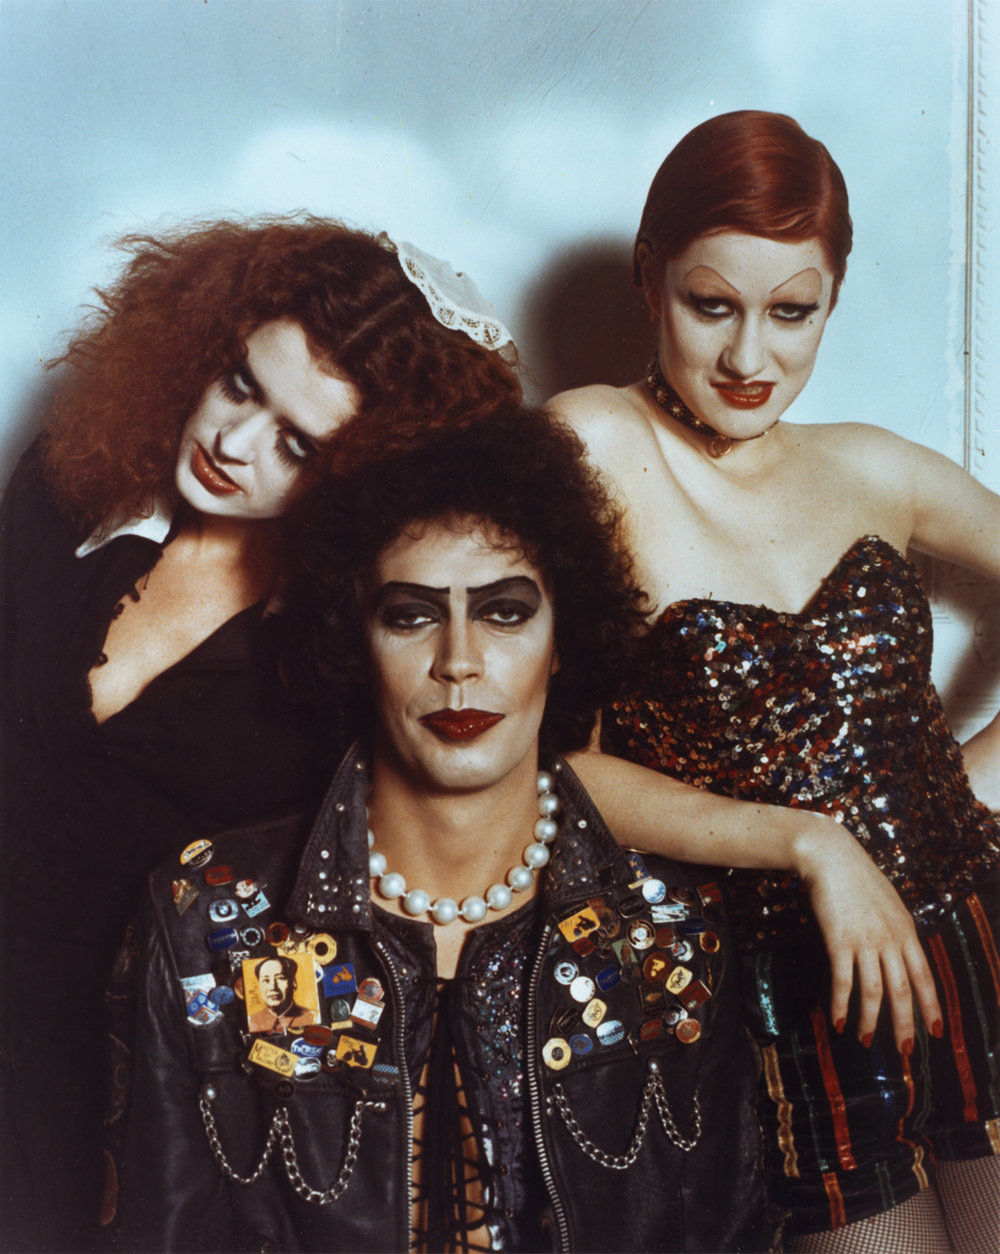 Copy of The Rocky Horror Picture Show